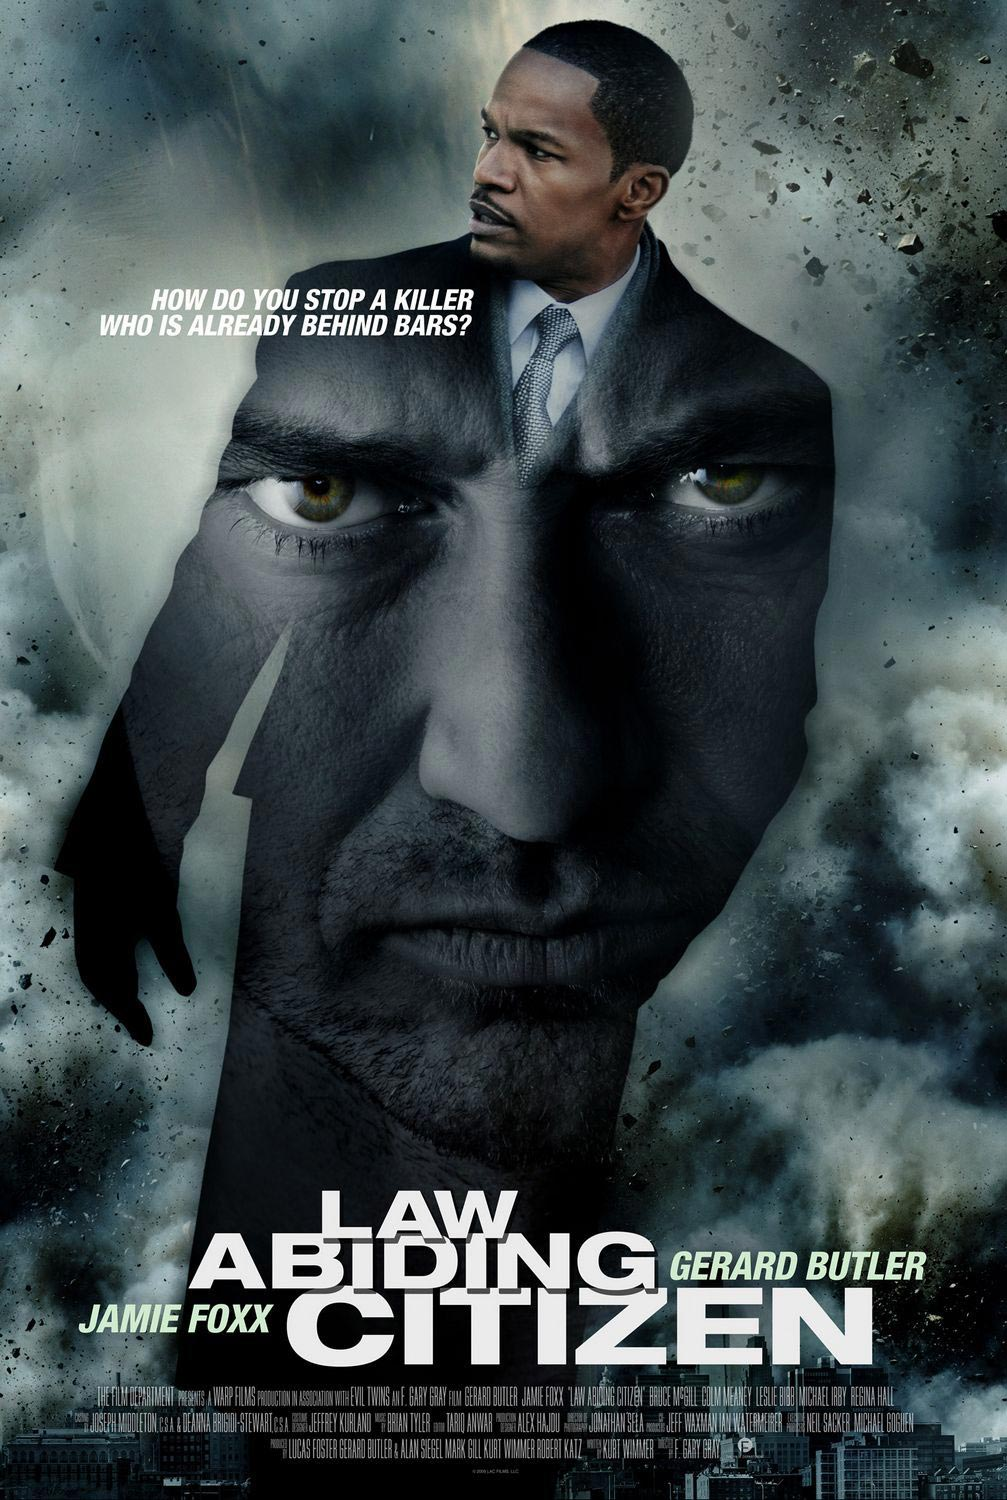 The film law abiding citizen how